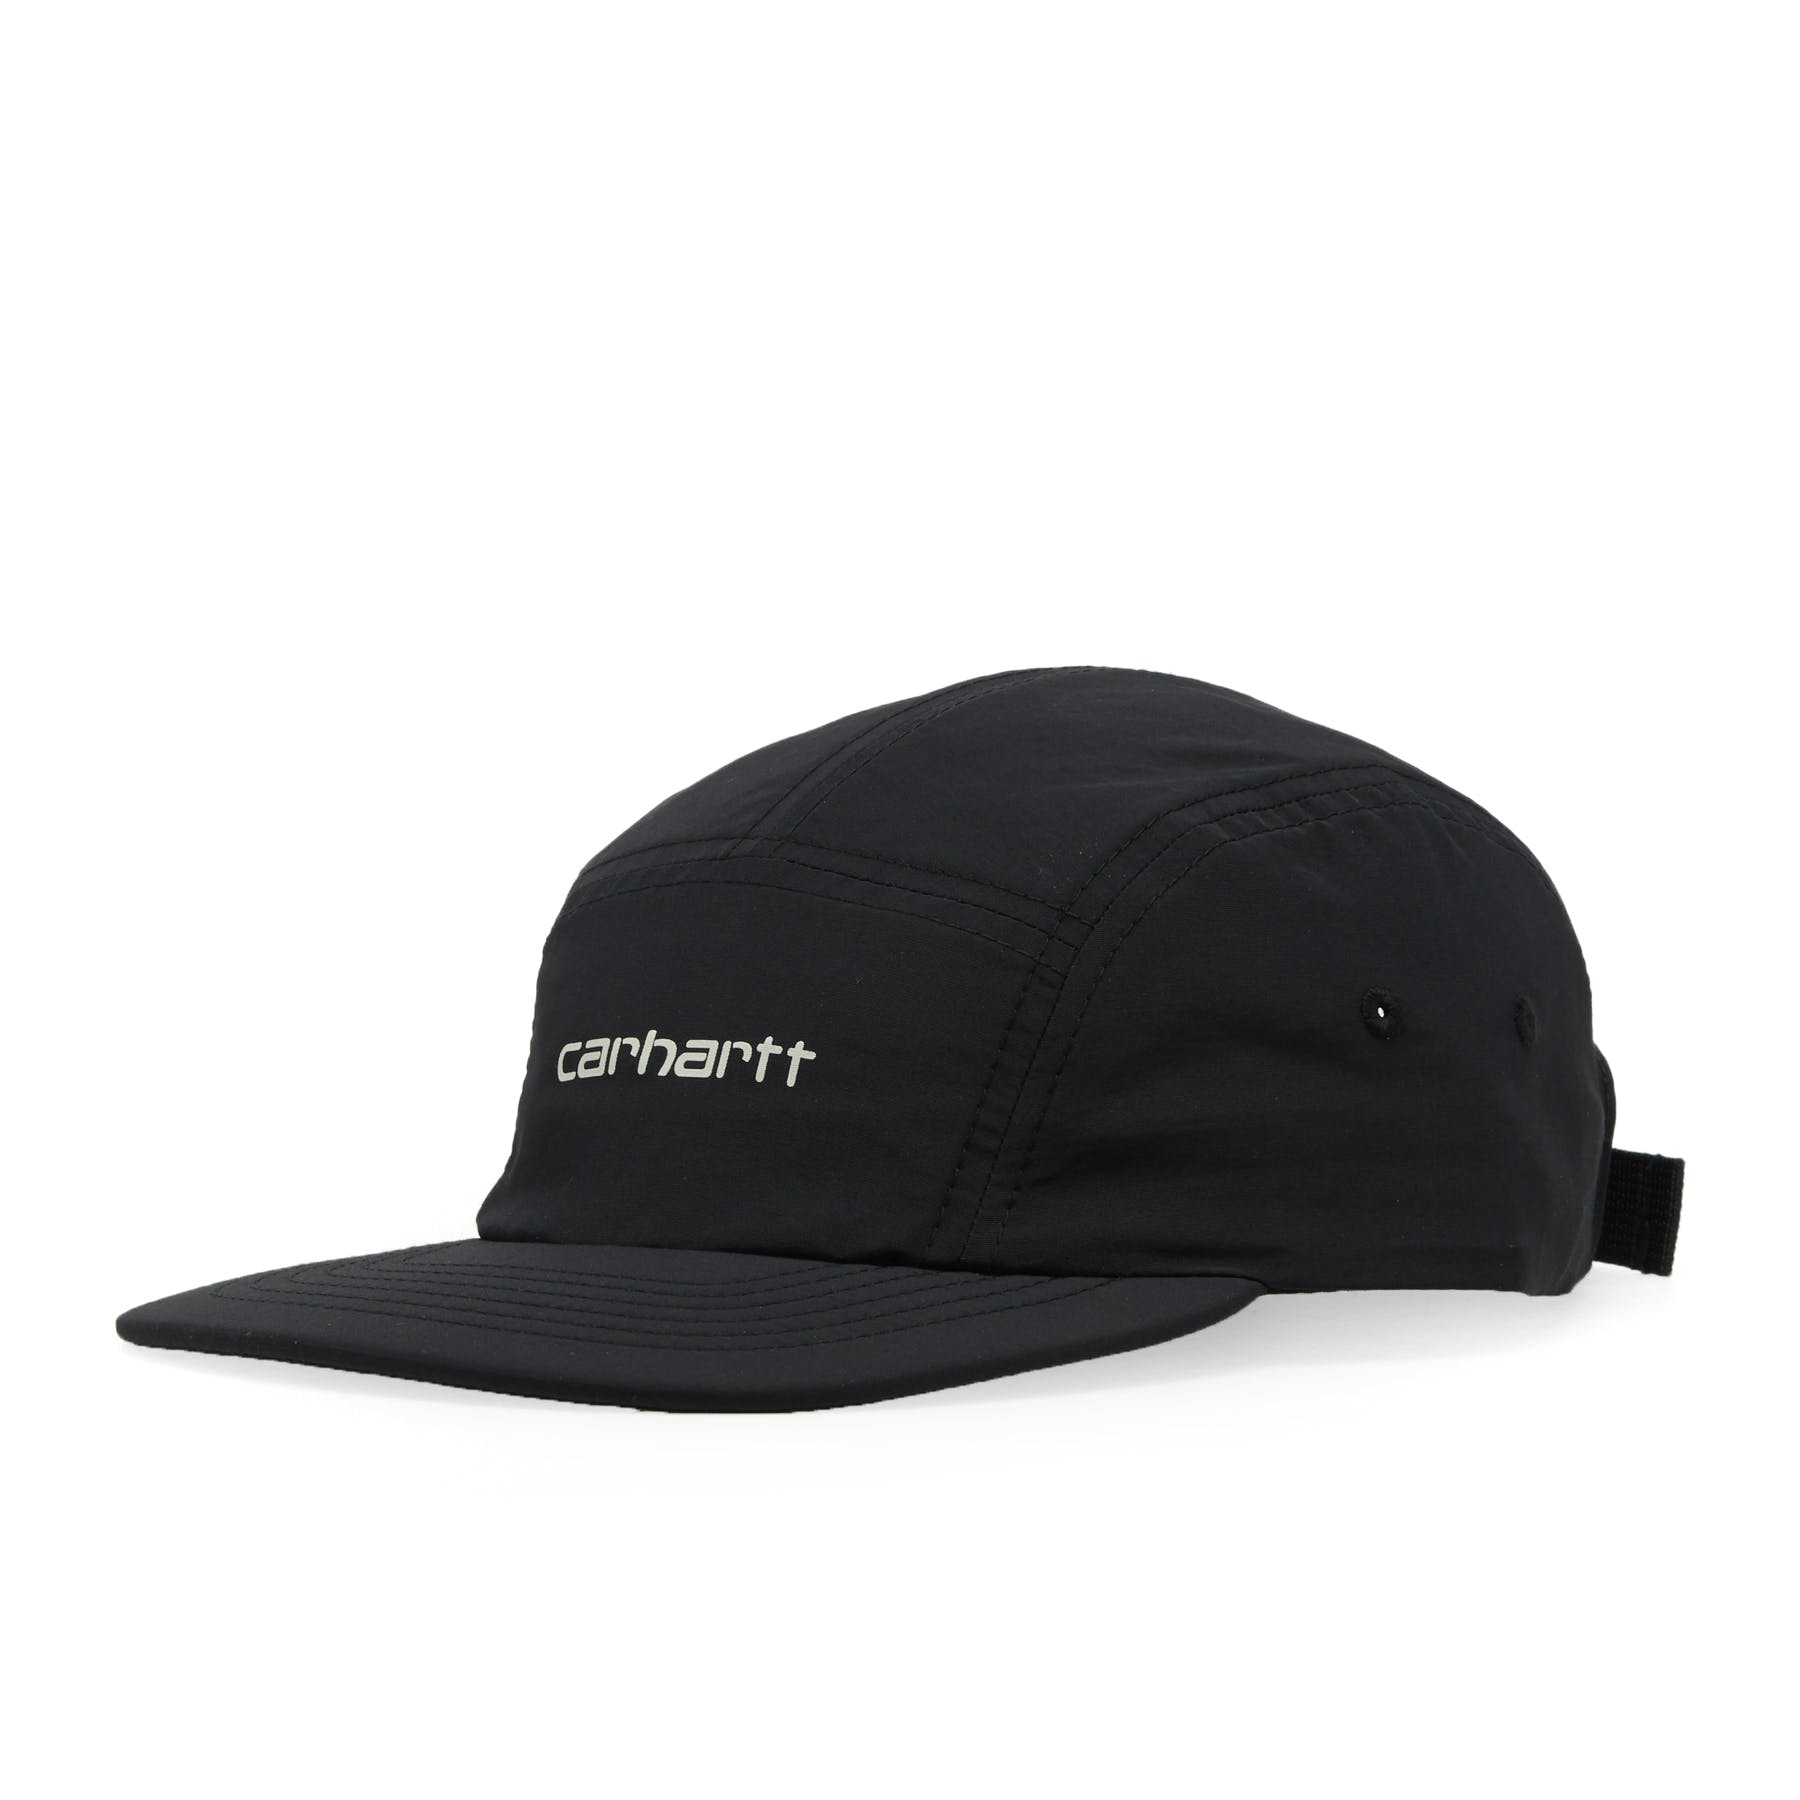 sale huge selection of first look Carhartt Coach Script Cap - Free Delivery options on All Orders ...